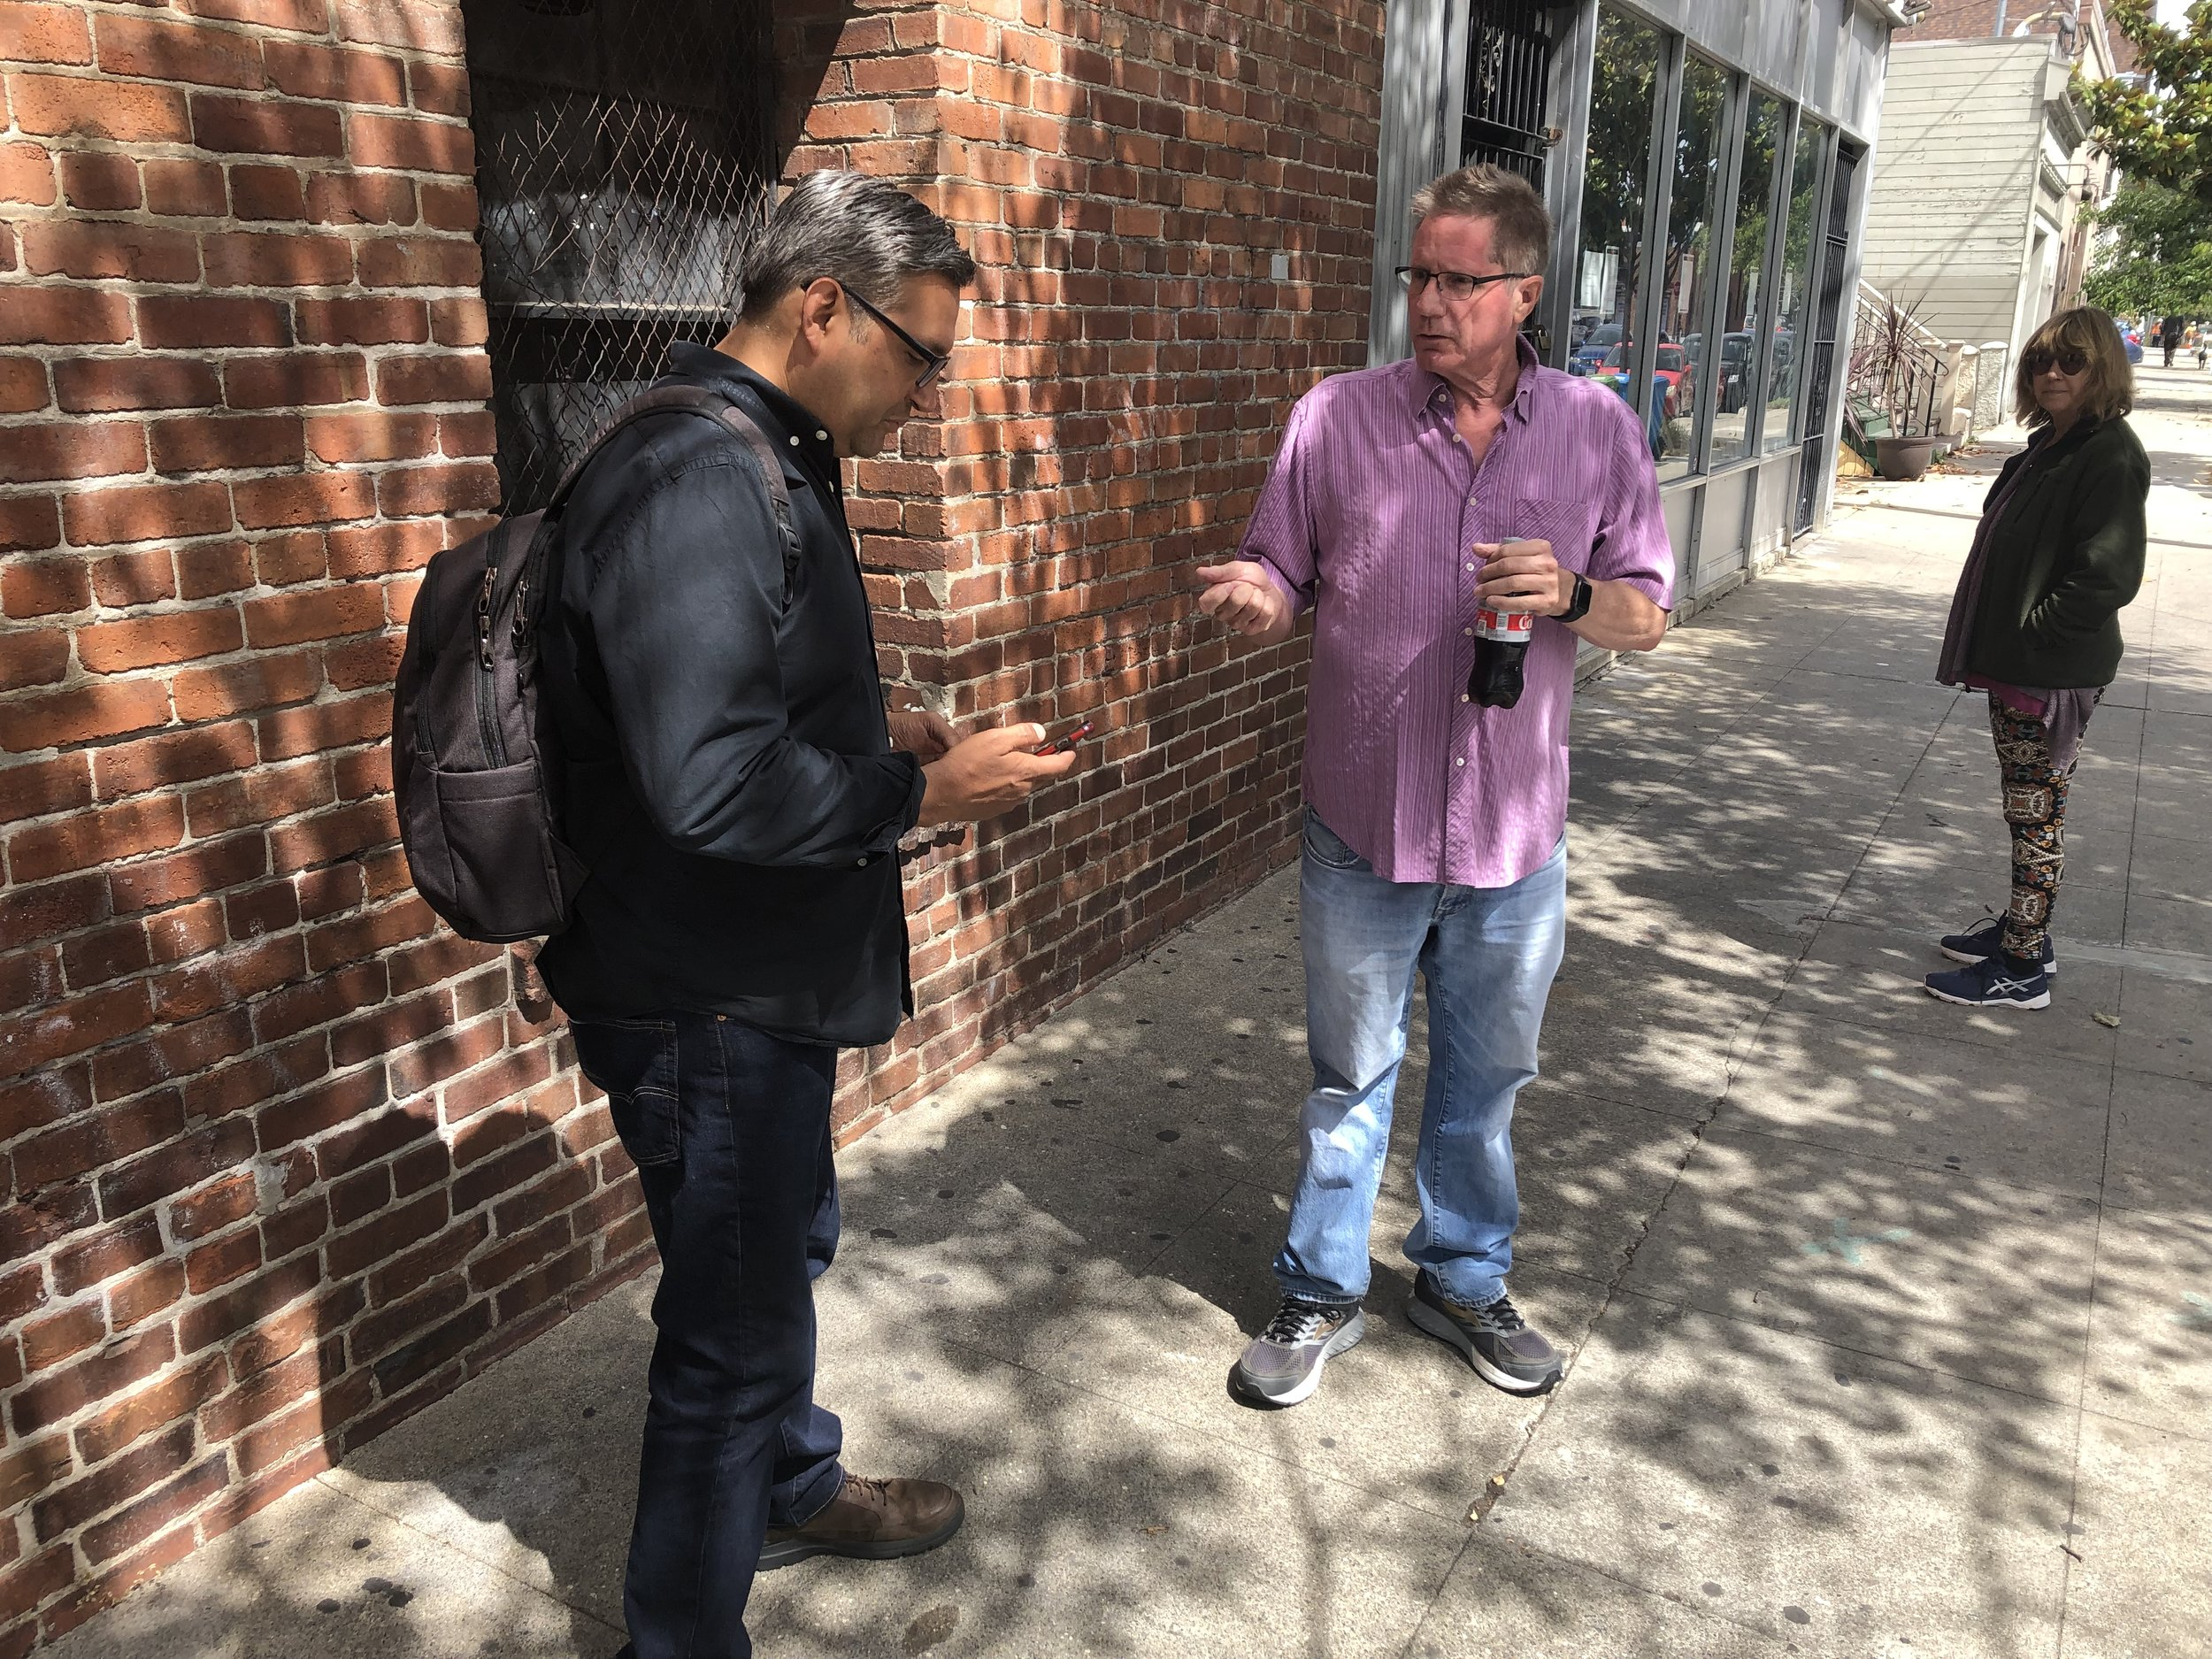 KPIX reporter Joe Vazquez, left, sharing his contact information with a source.